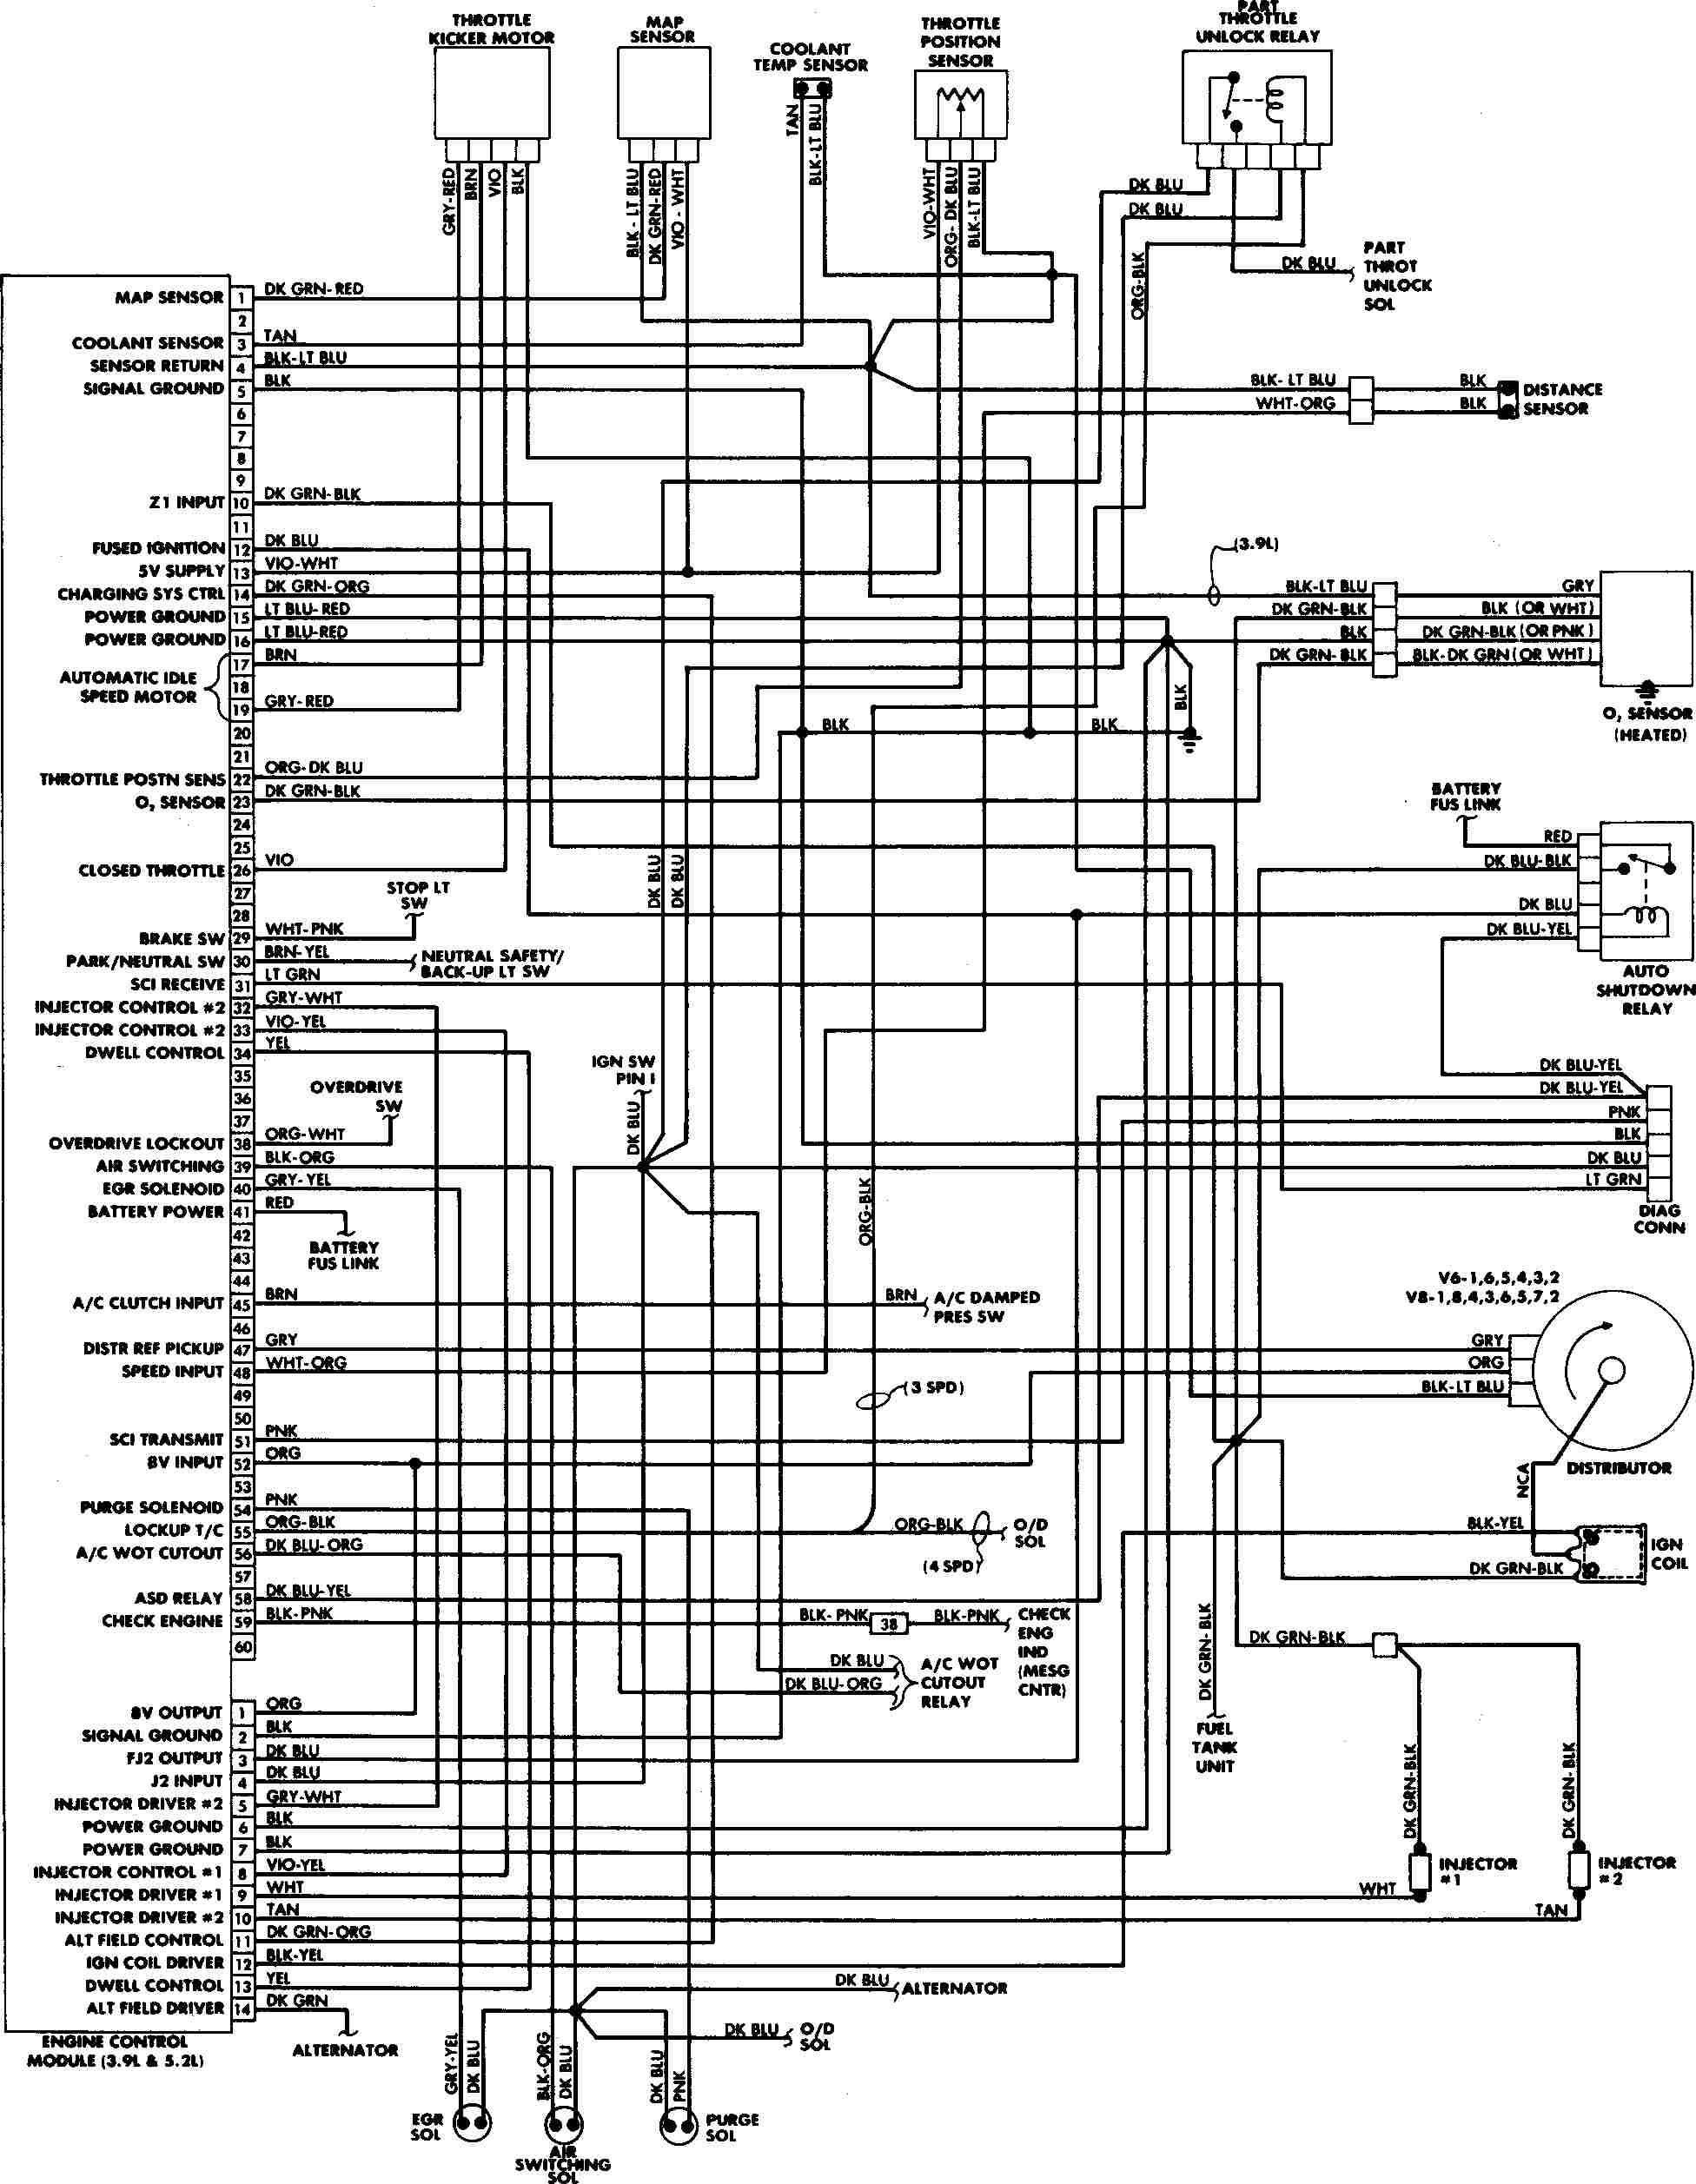 Truck Wiring Diagrams 76 Corvette Radiator Diagram 76 Get Free Image About Wiring  Diagram Of Truck